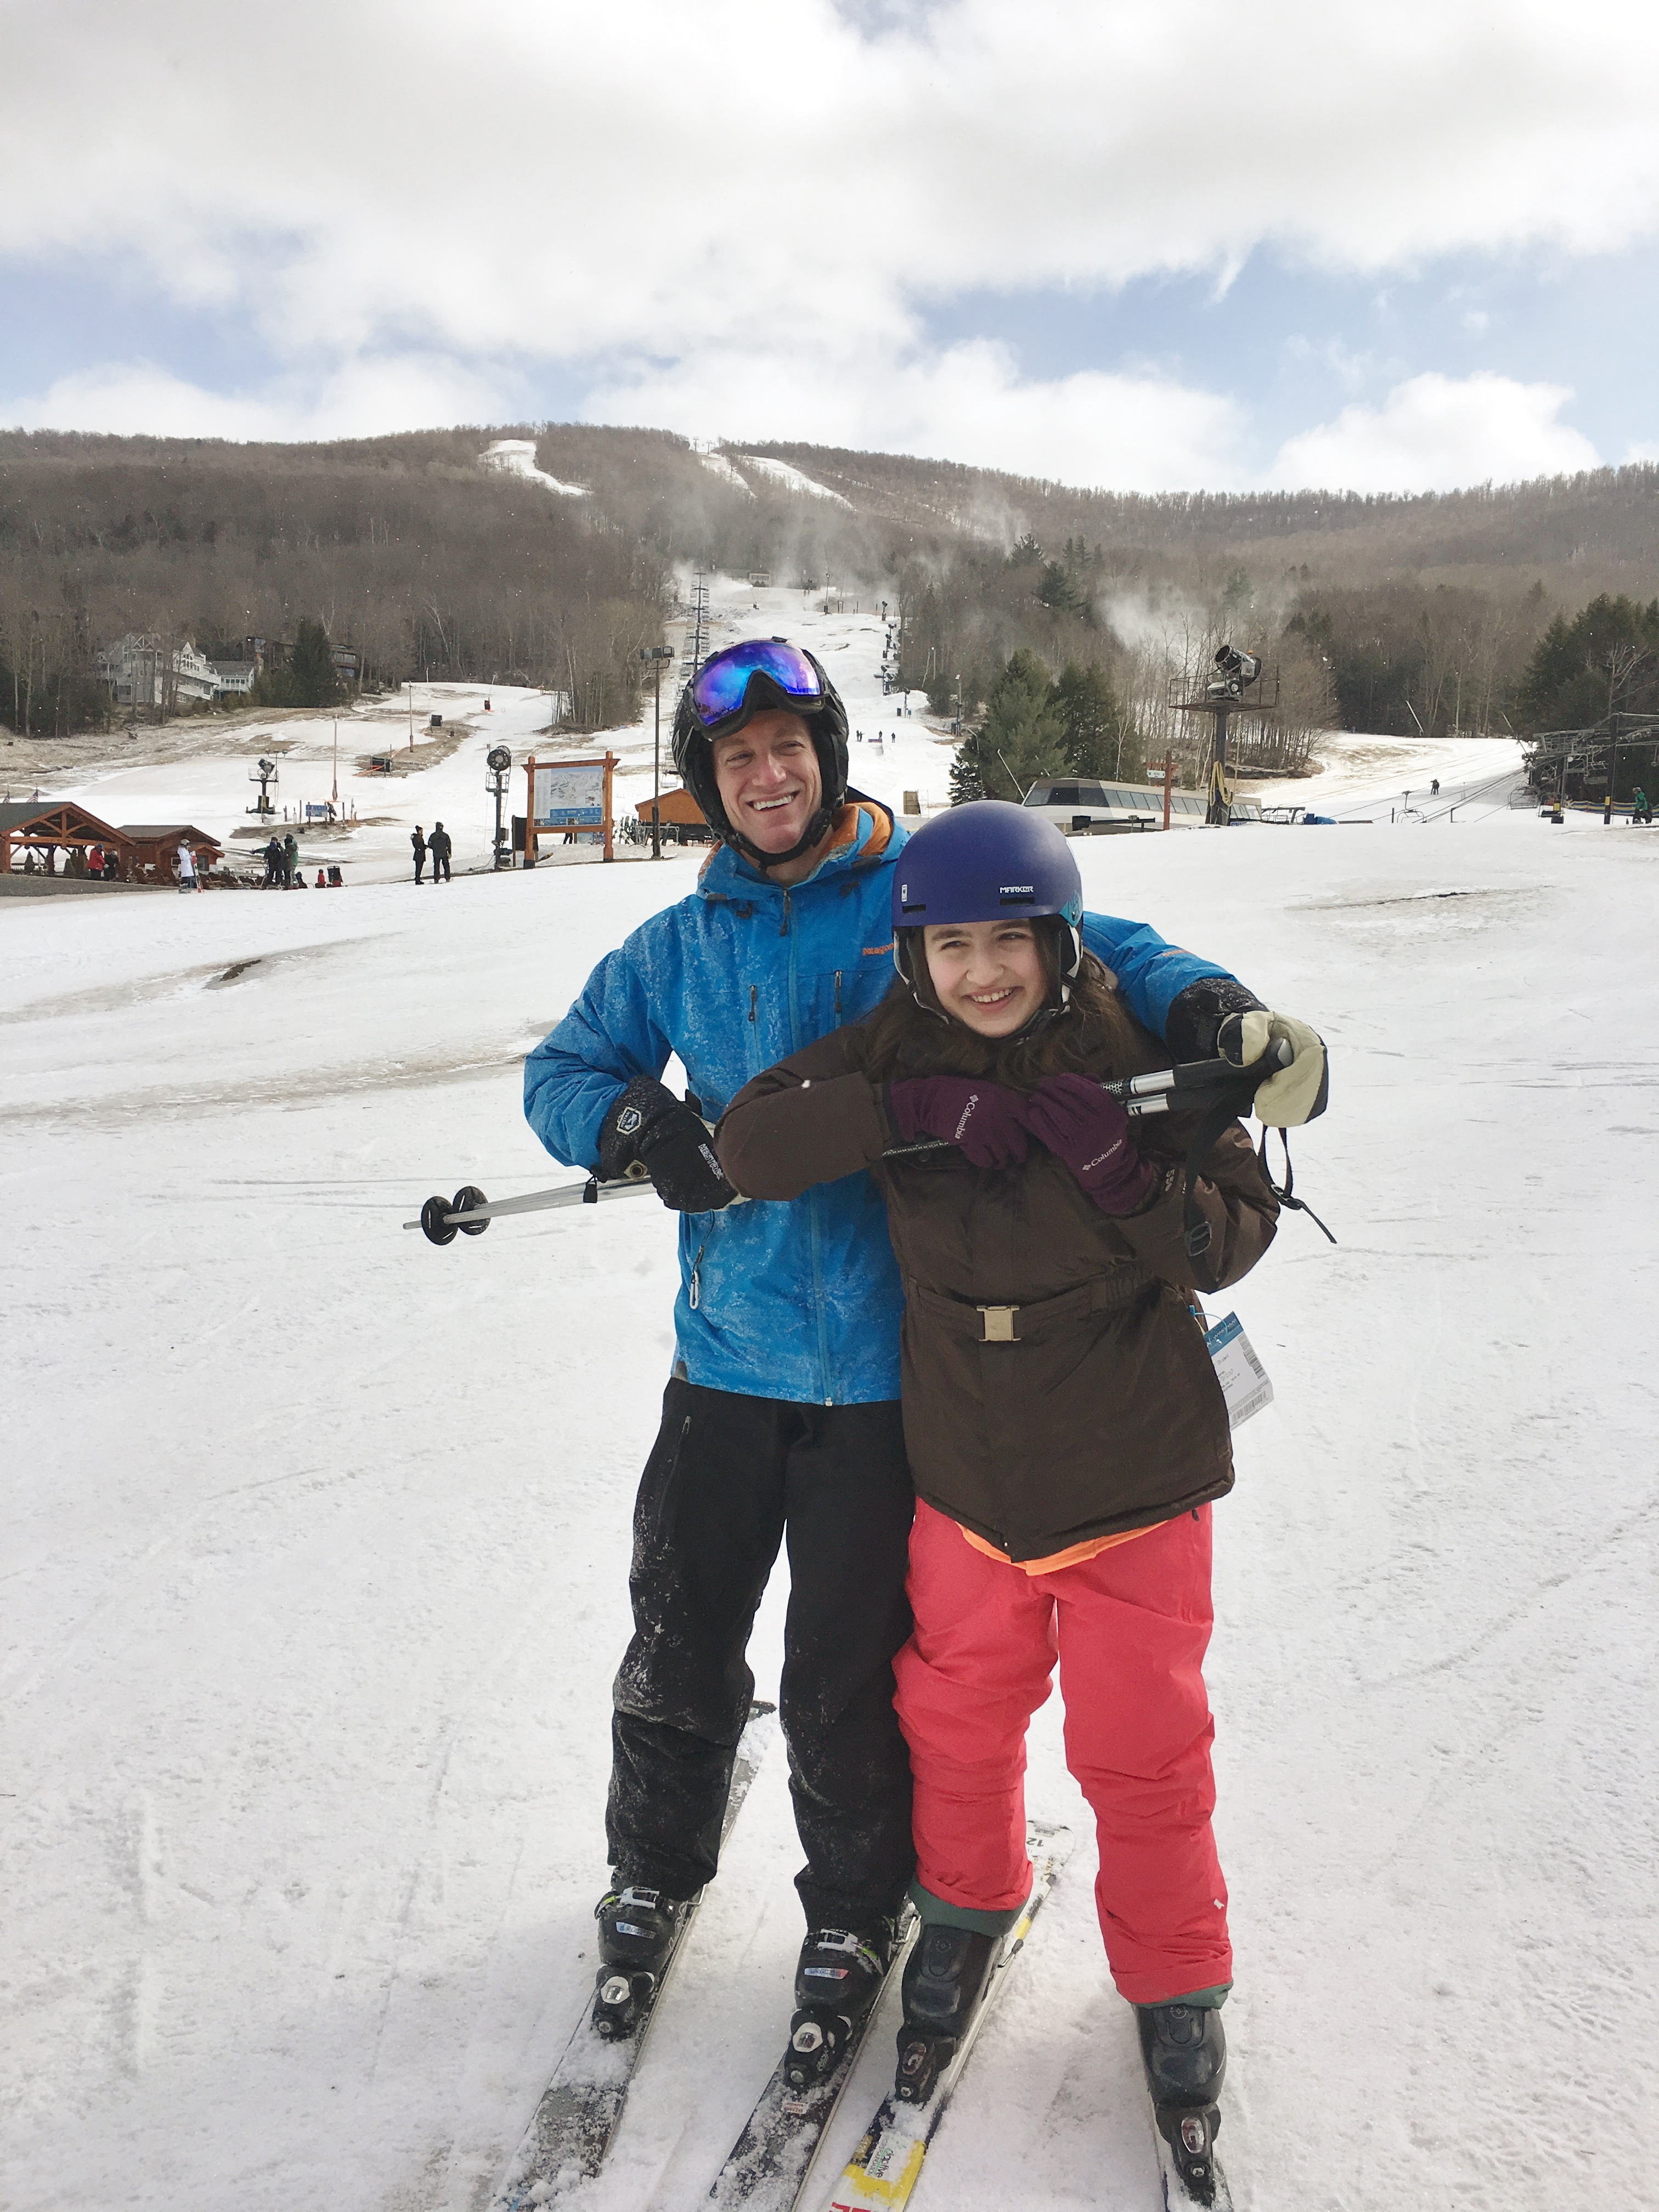 Pediatric orthopedic surgeon Dr. David Scher with patient Isabella Cottone on last year's ski trip sponsored by Hospital for Special Surgery.